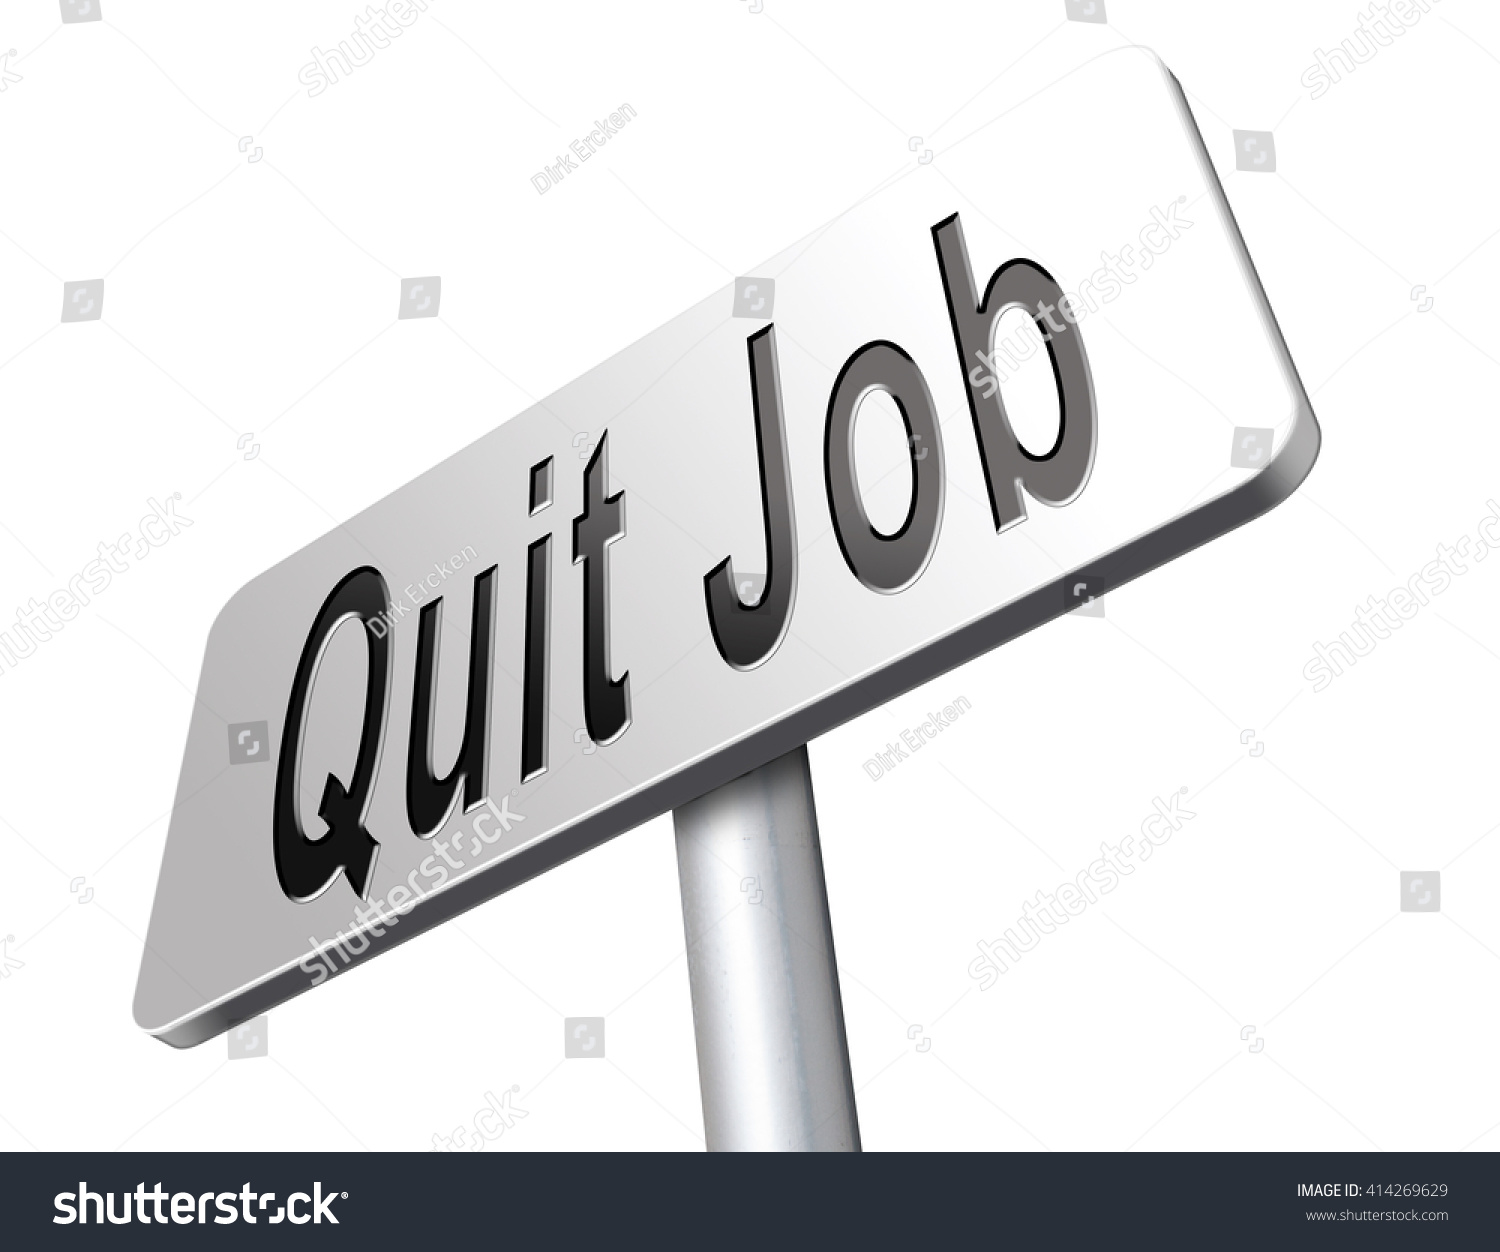 quit job resigning work getting unemployed stock illustration quit job resigning from work and getting unemployed road sign billboard